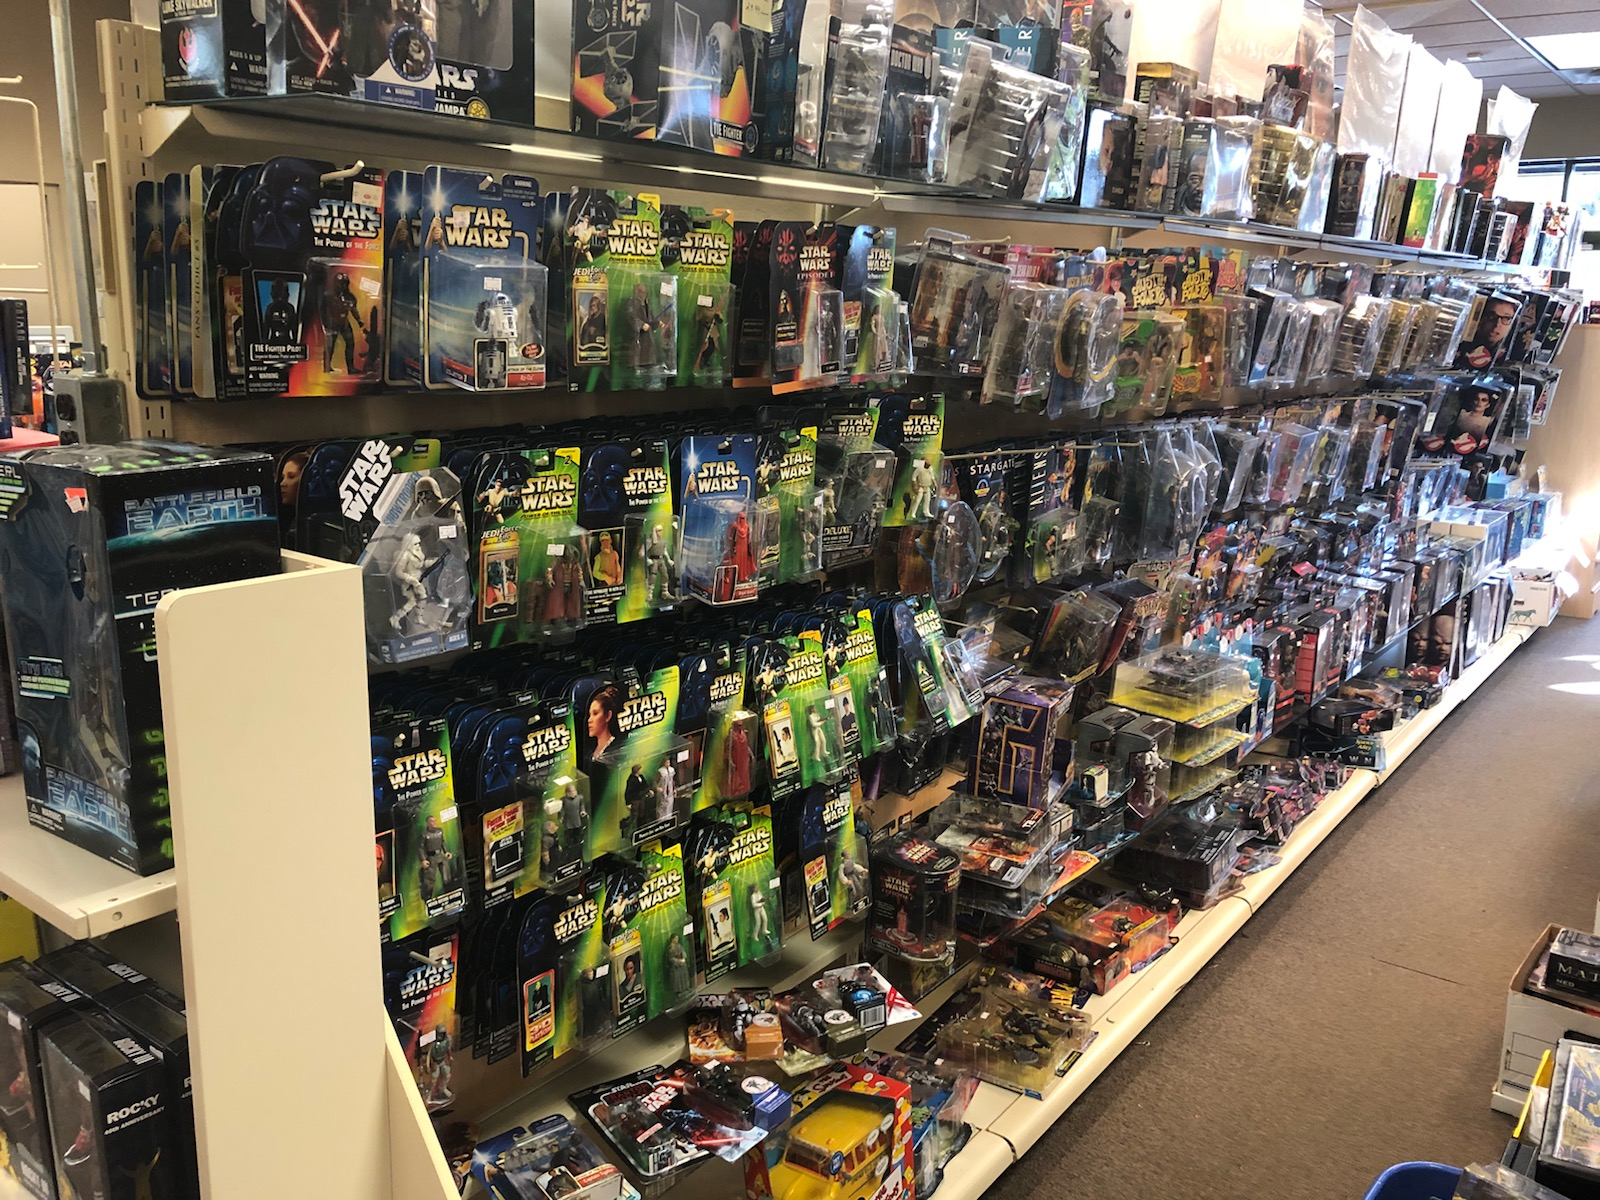 Our Star Wars collection is massive!